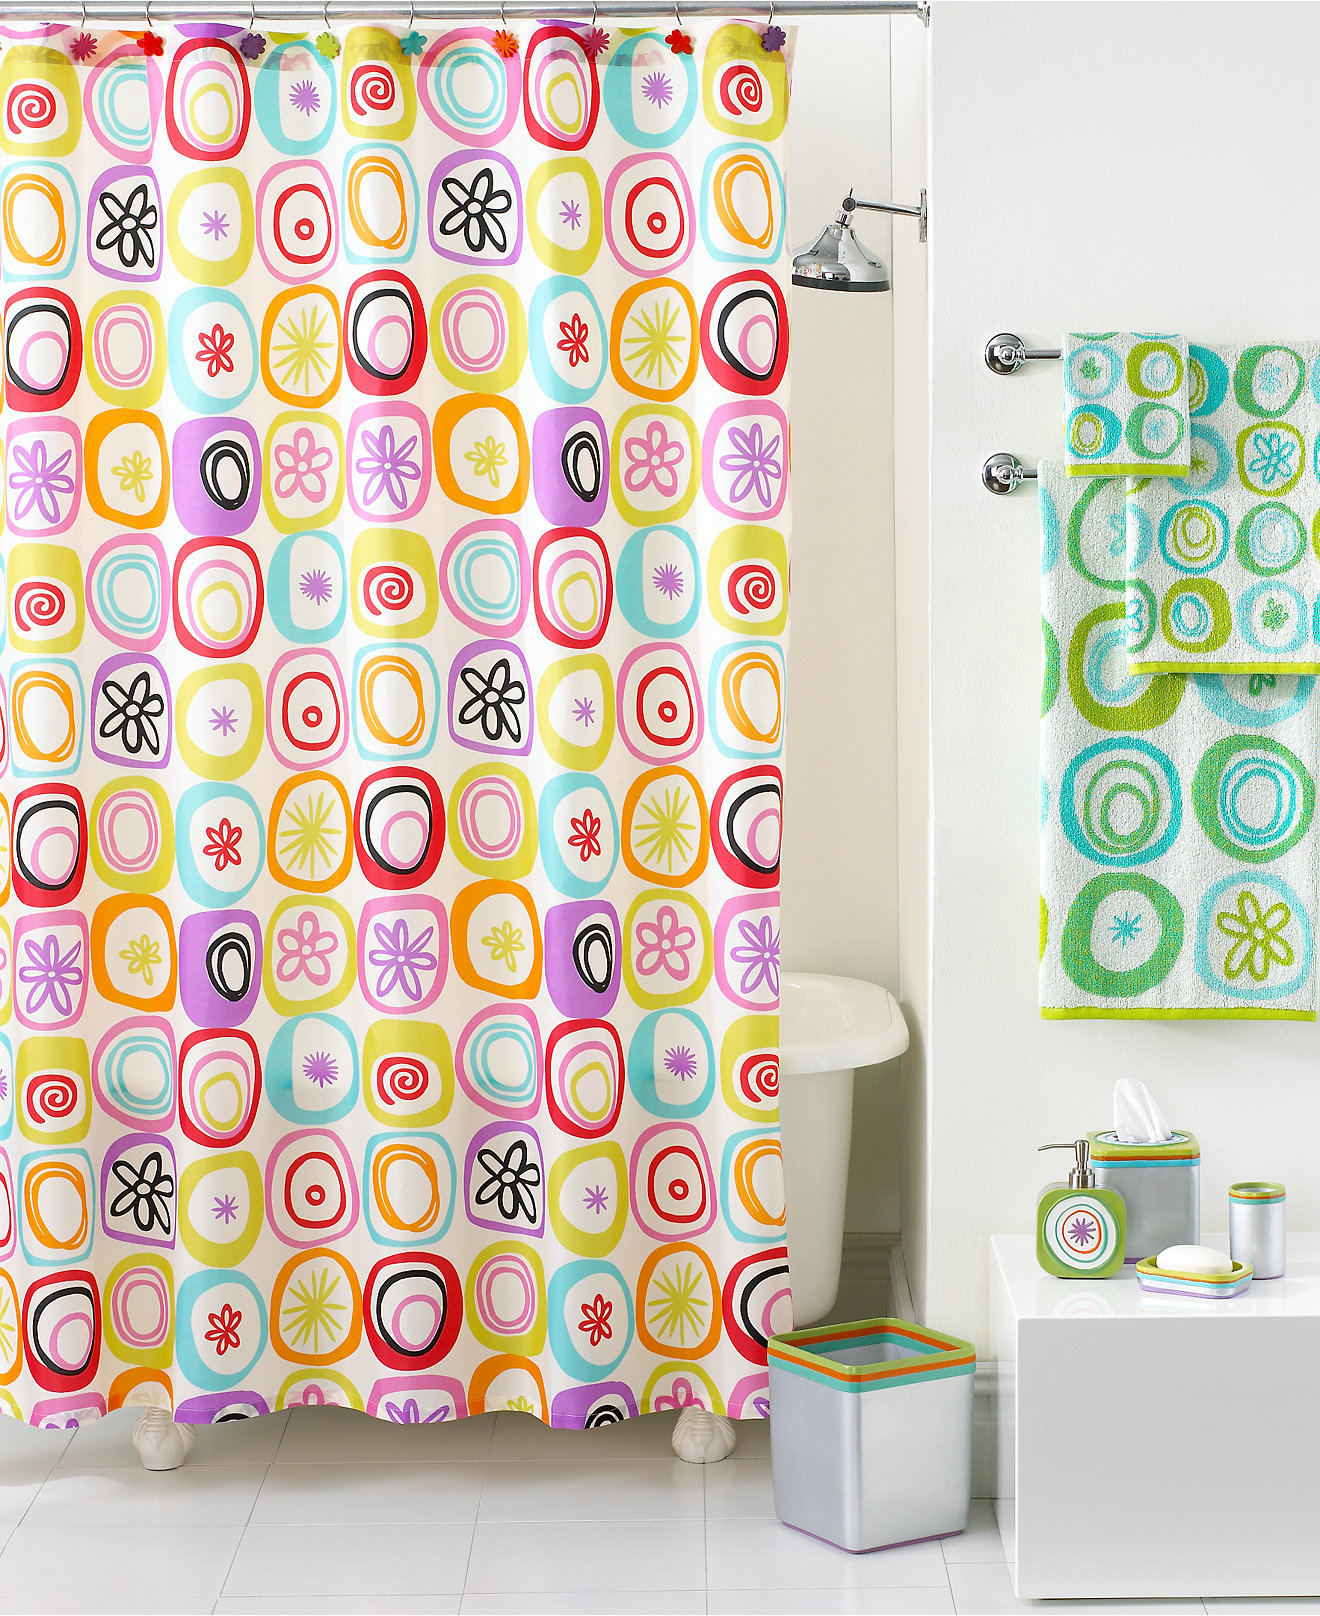 Clear fish shower curtain - Creative Bath All That Jazz Collection